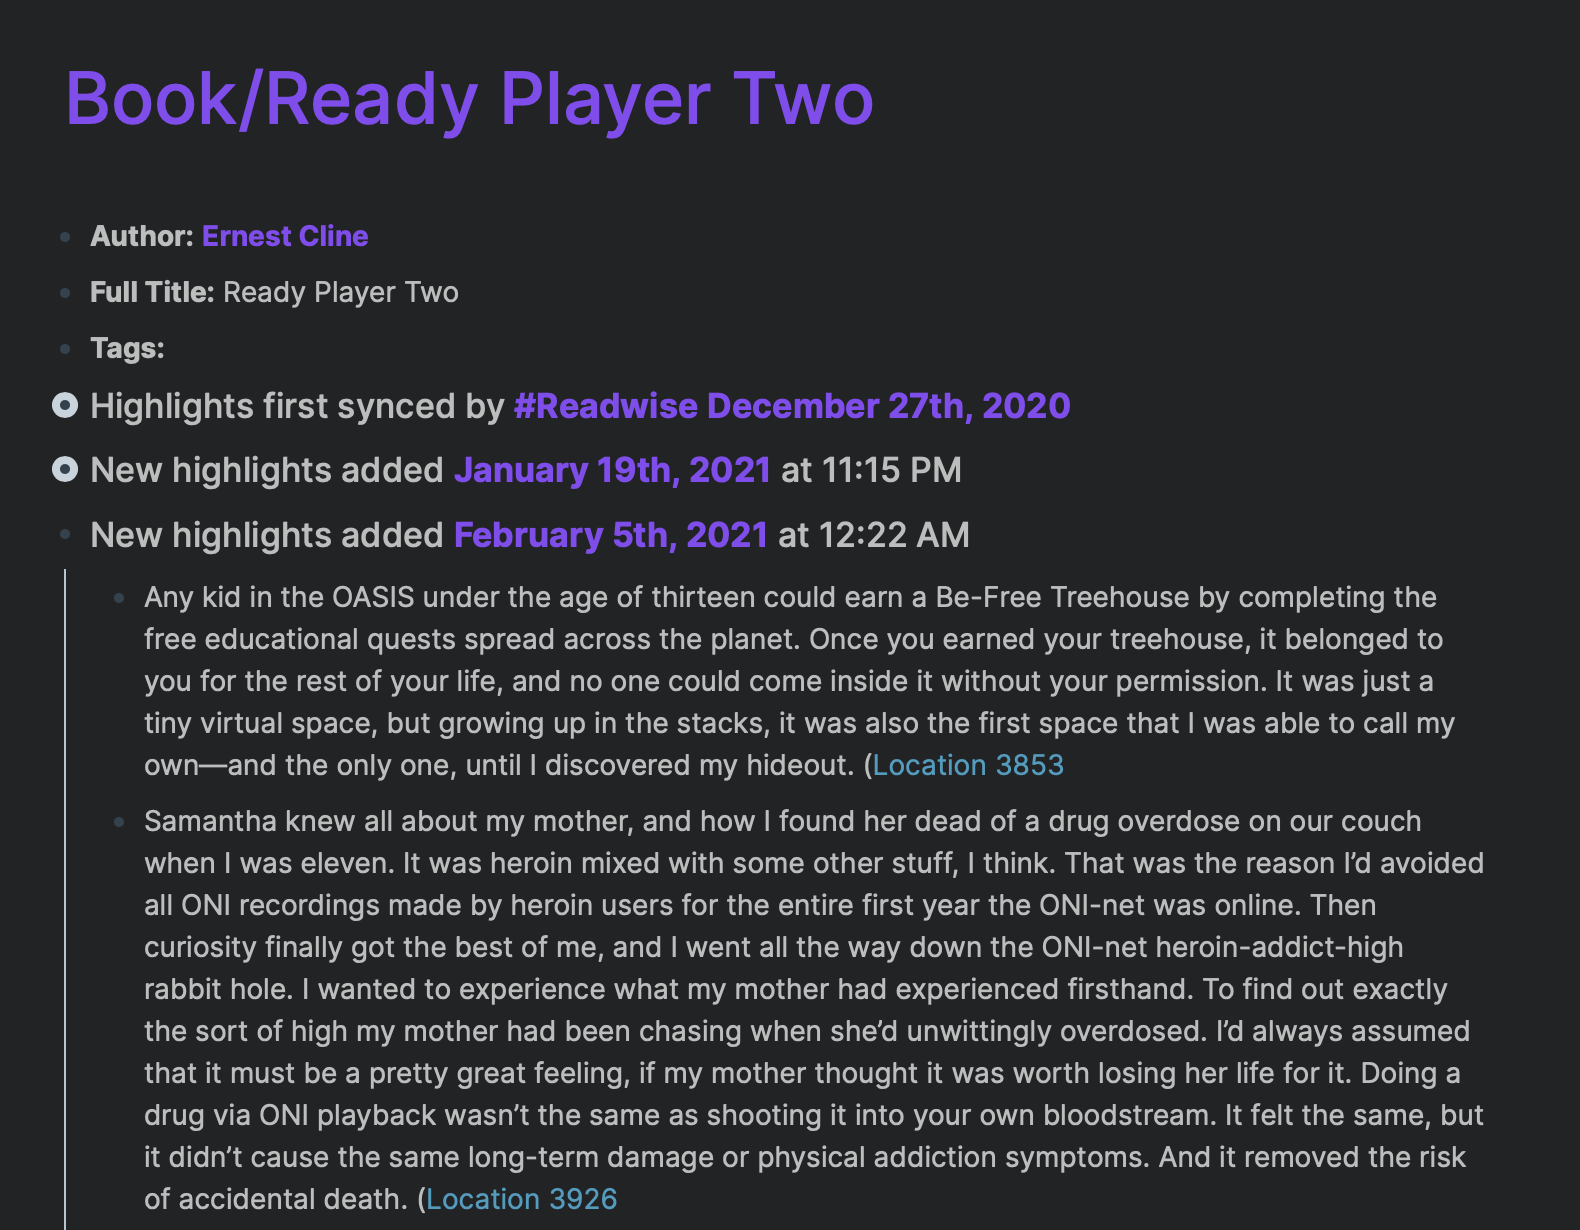 Ready Player Two book notes in Roam, imported via Readwise